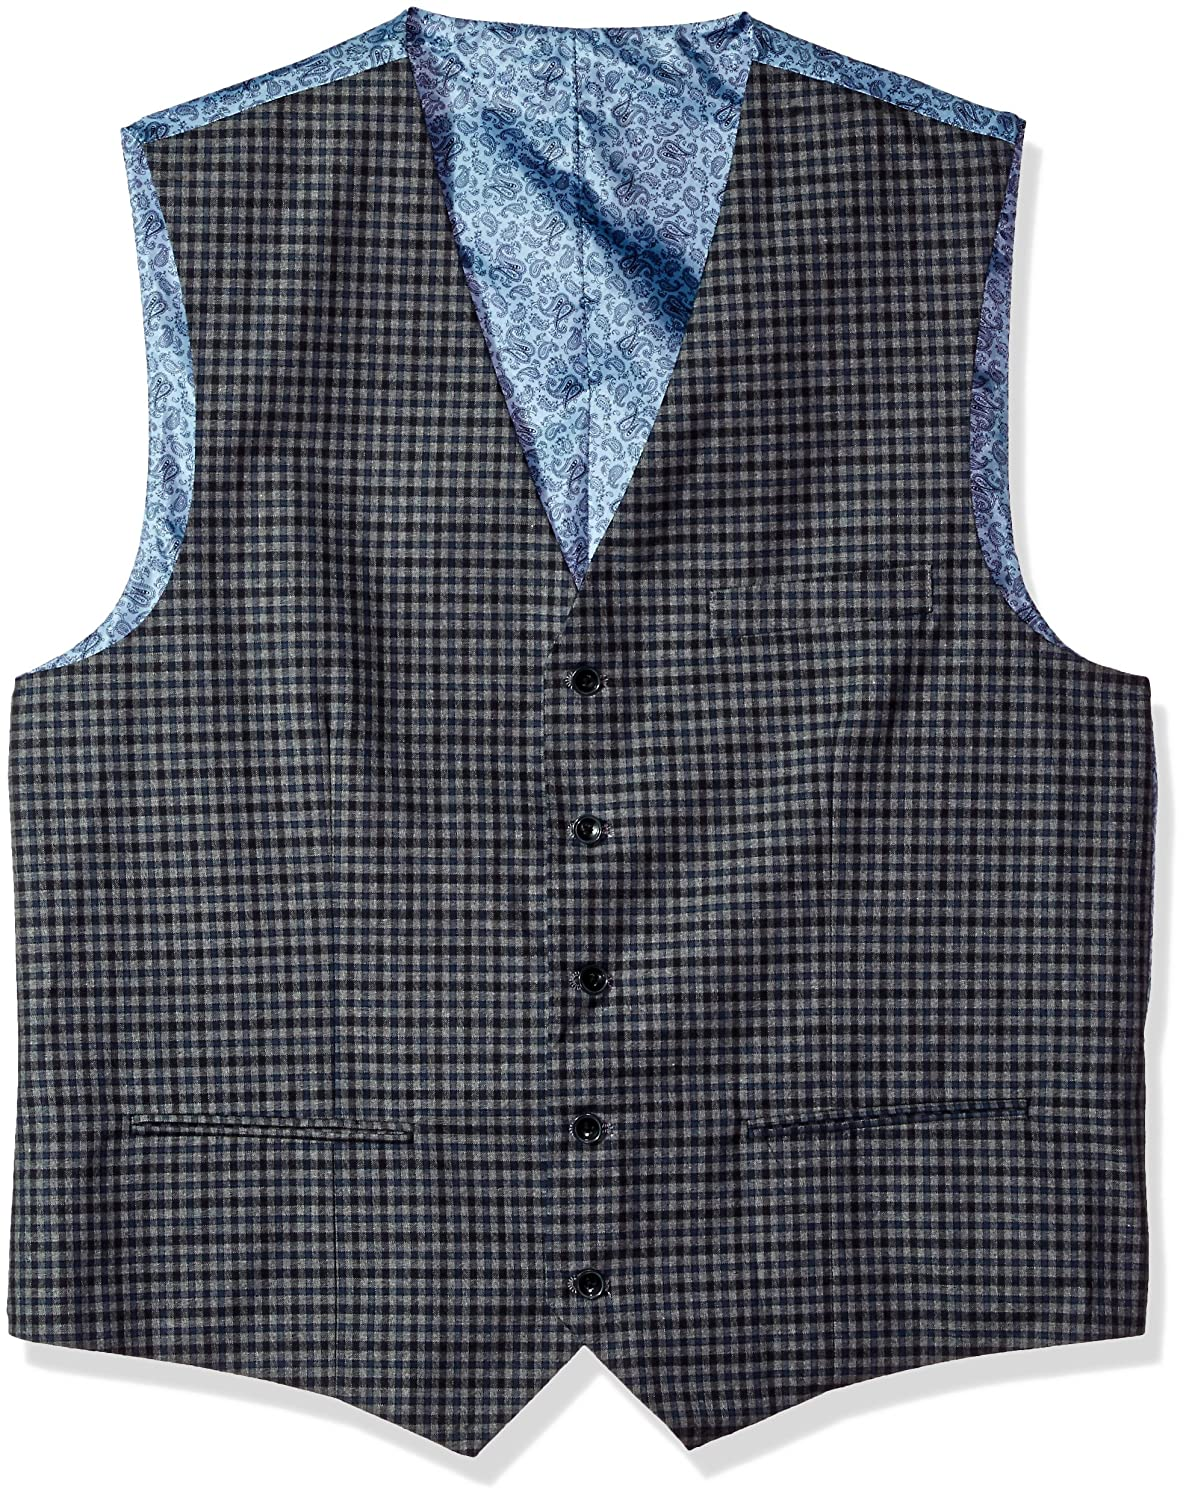 Alexander Julian Colours Men's Big & Tall Modern Fit Check Suit Separate Vest Alexander Julian Child Code 891-010V